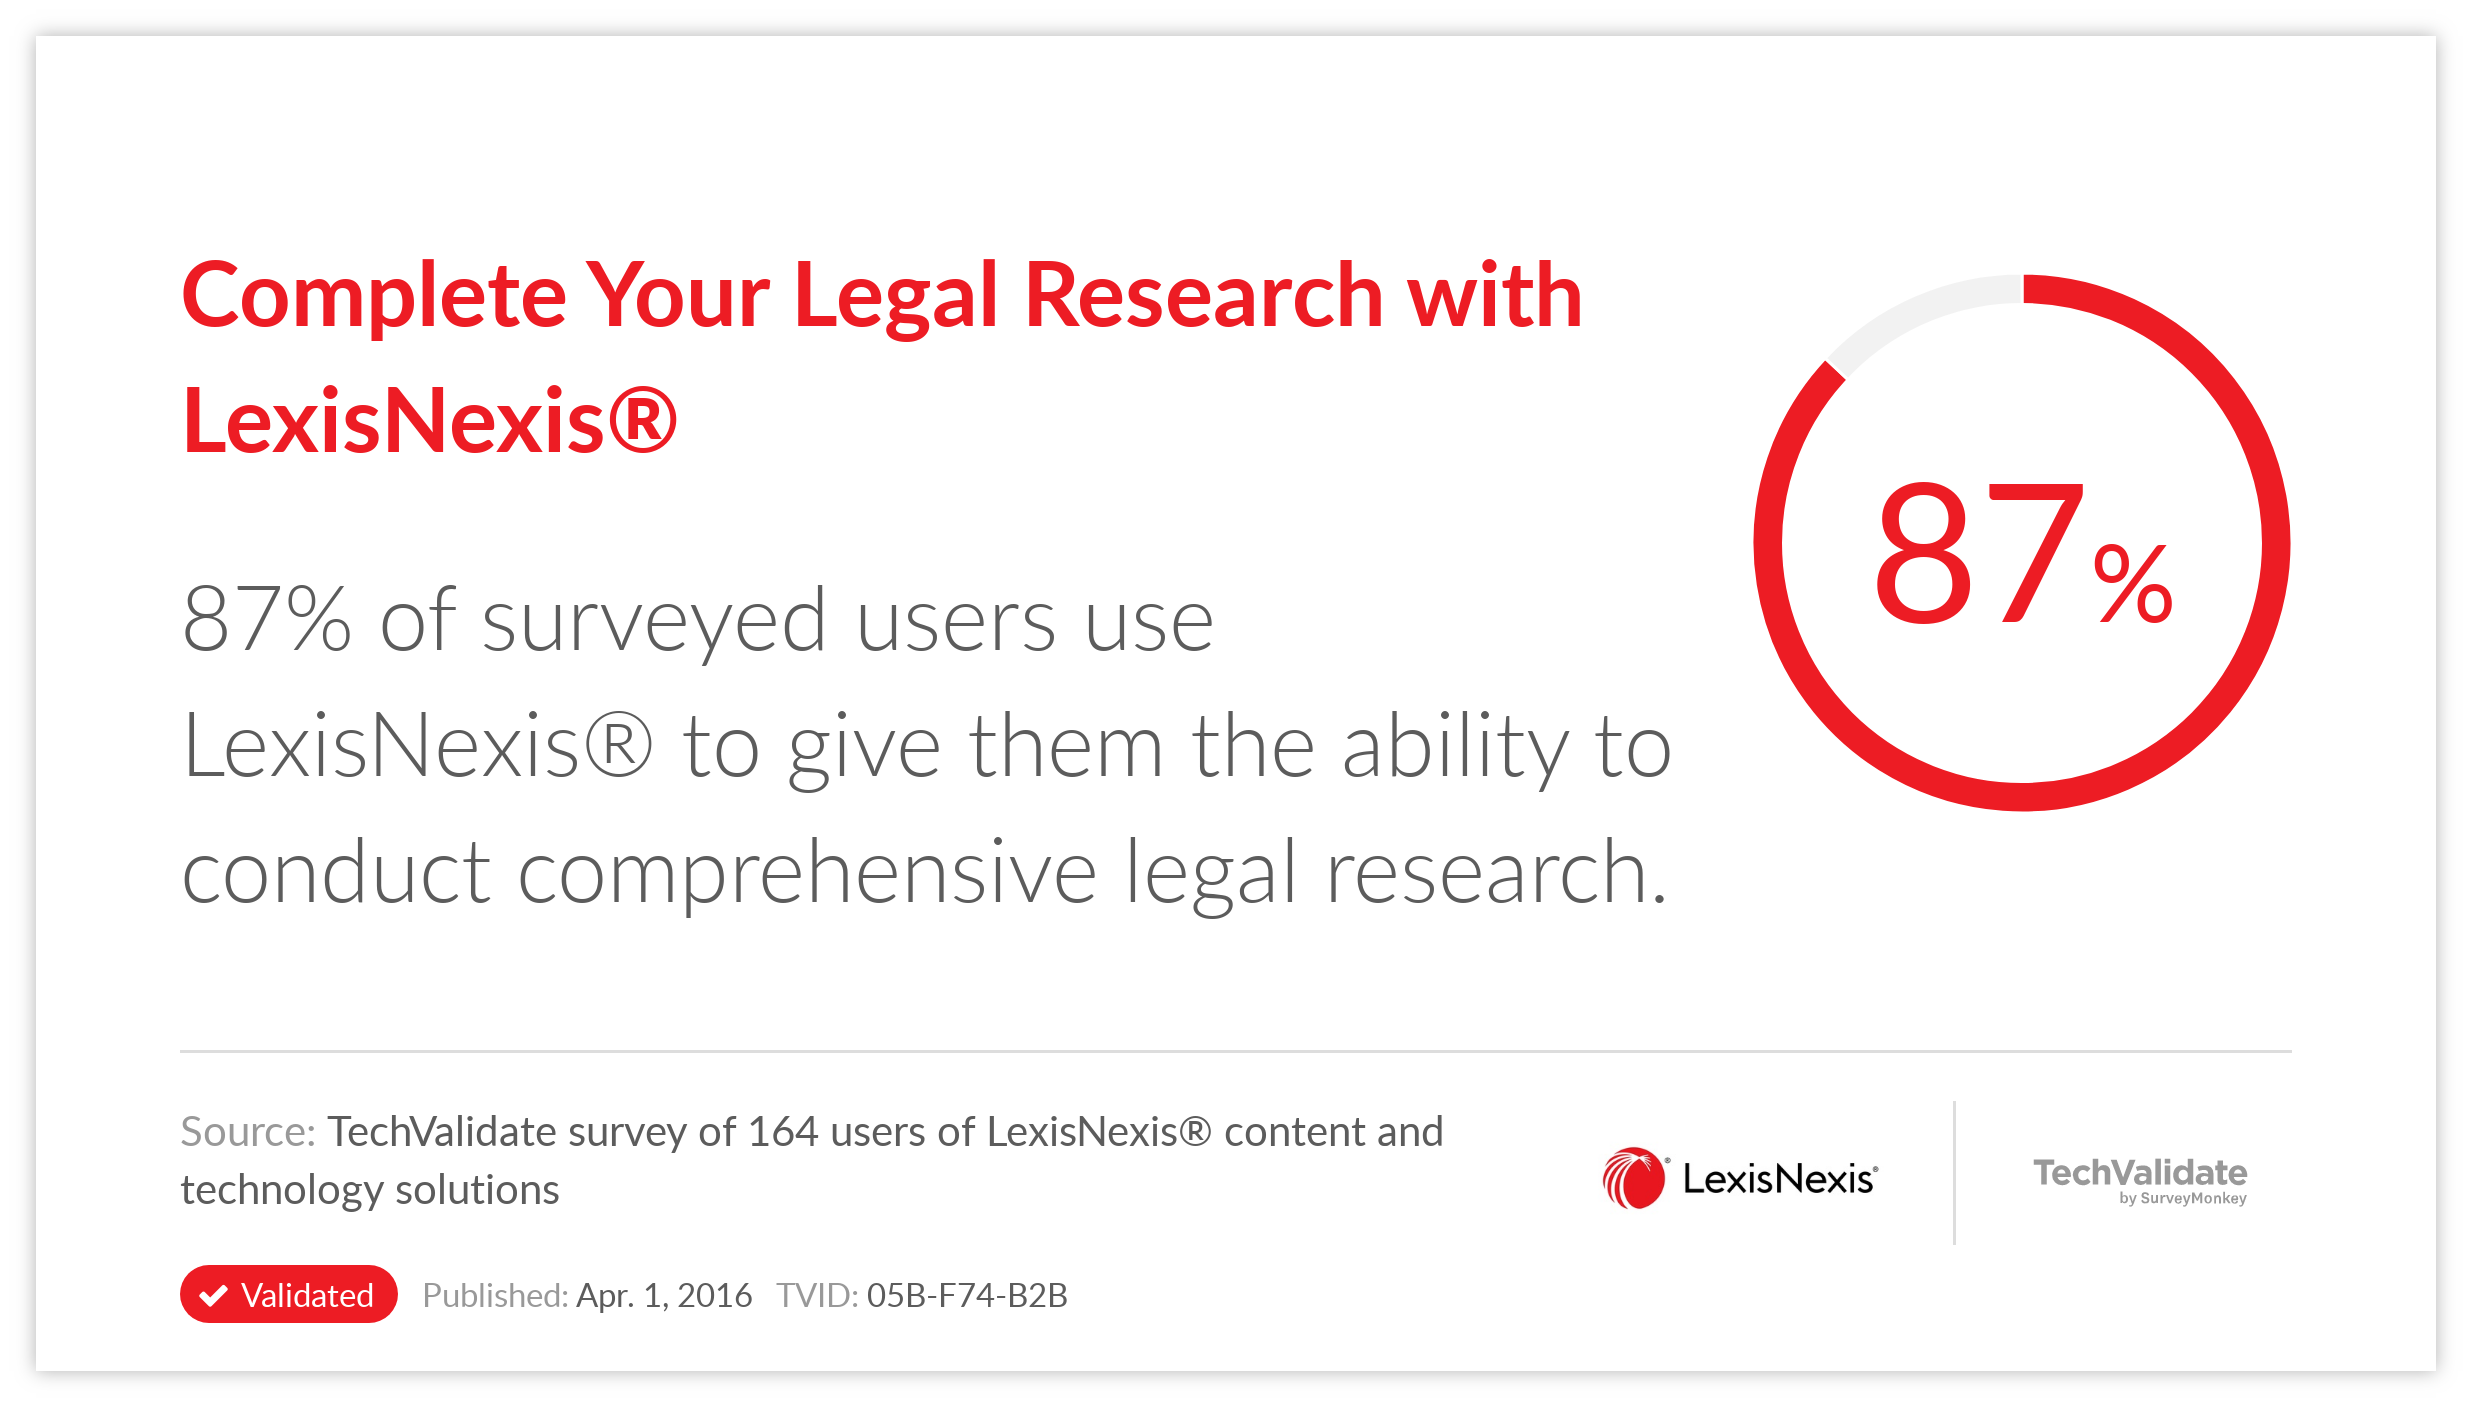 Complete Your Legal Research with LexisNexis®